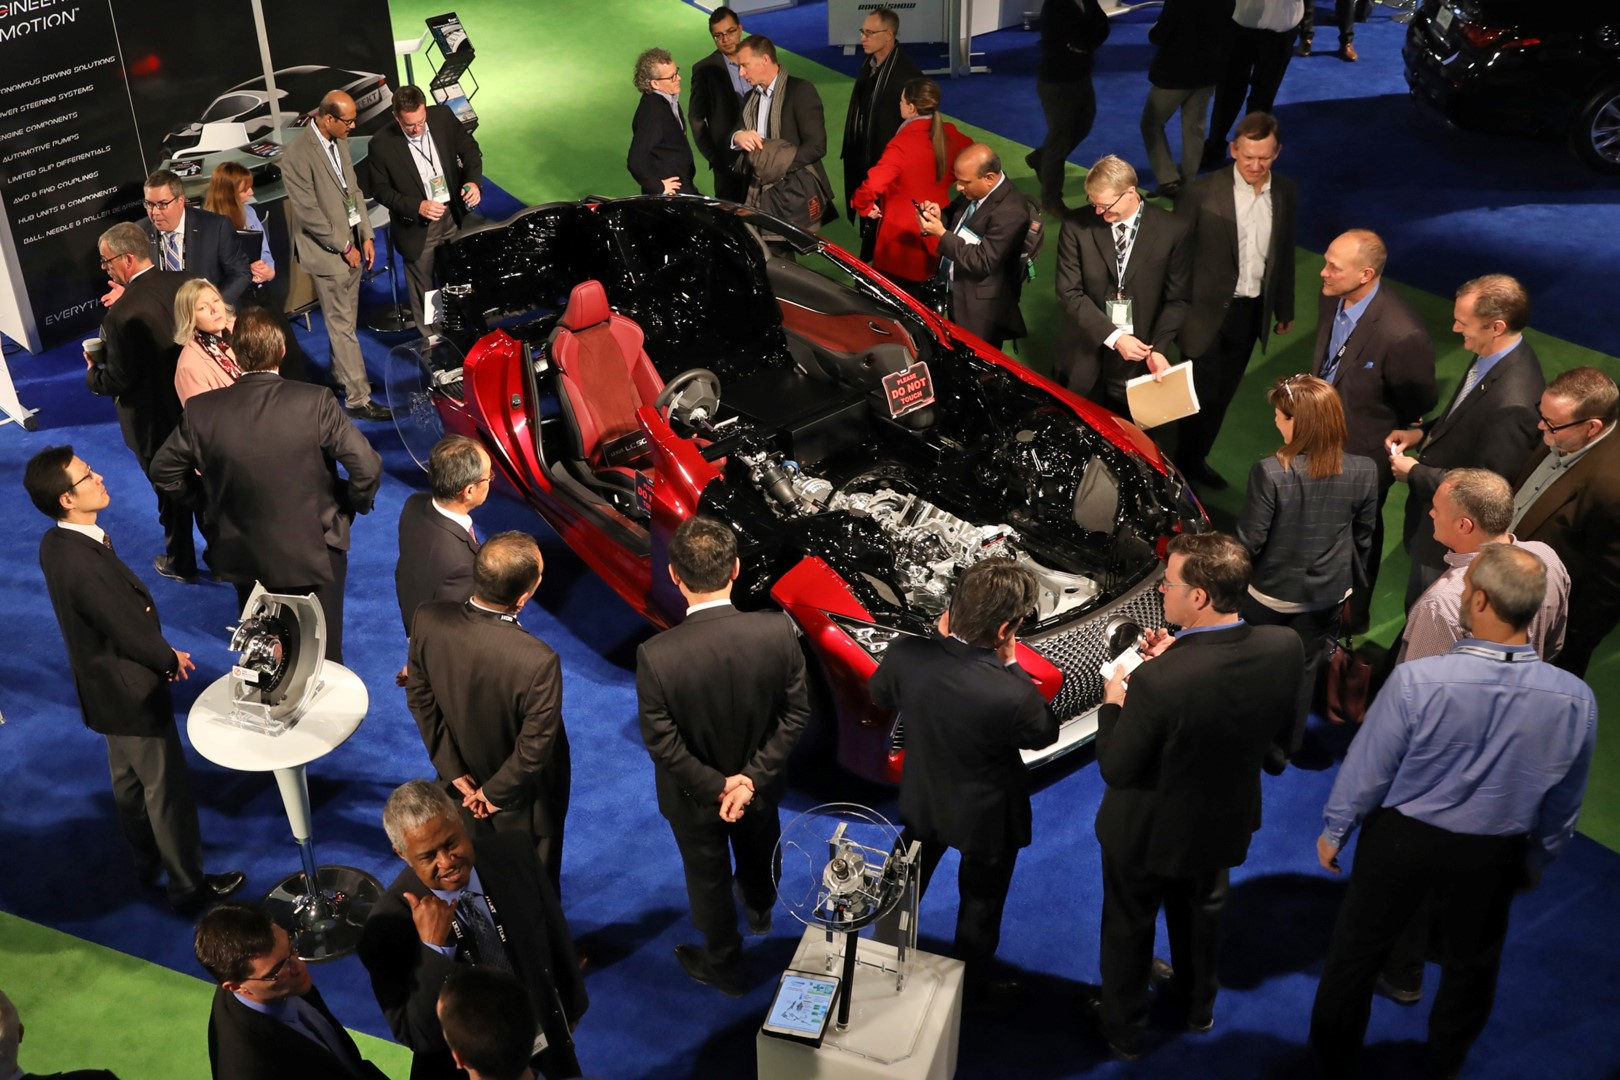 Digital Strategies to Maximize the Value of Events as a B2B Brand (Automobili-D Image Courtesy of NAIAS)